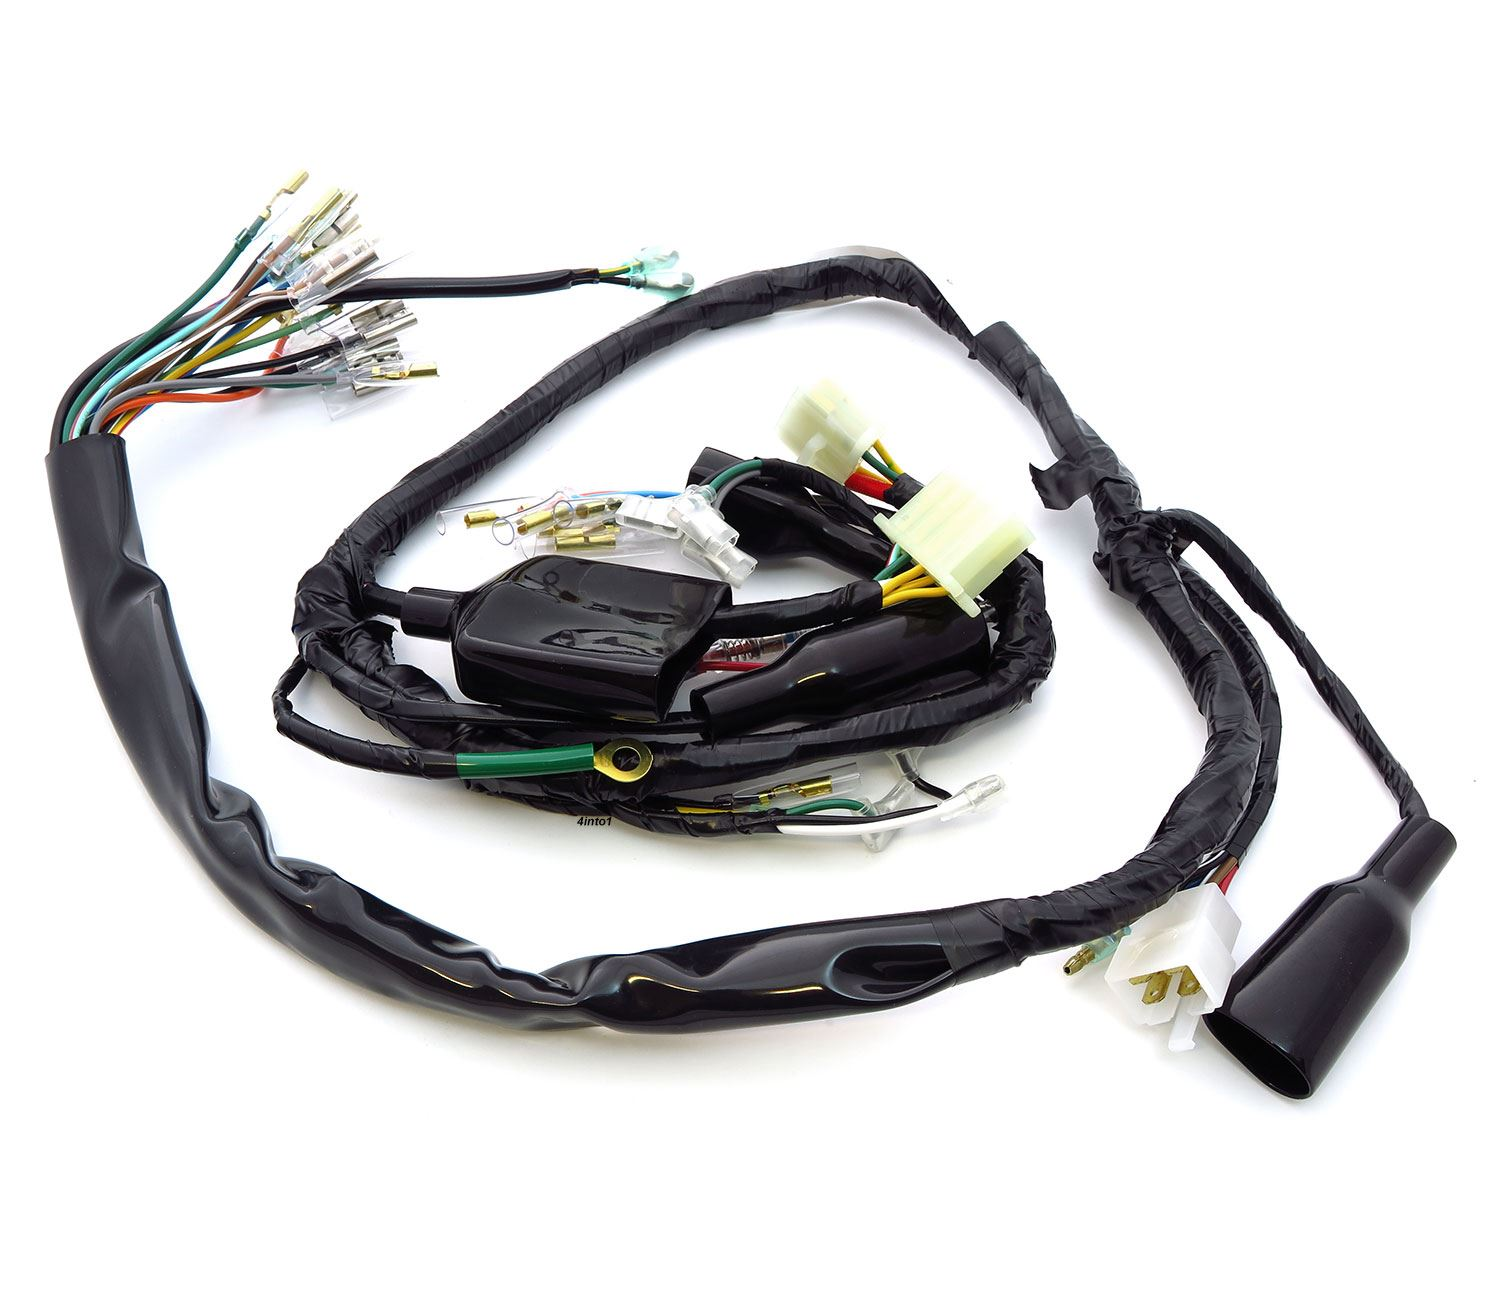 Wiring Harness For Honda : Honda cb f motorcycle wiring harness get